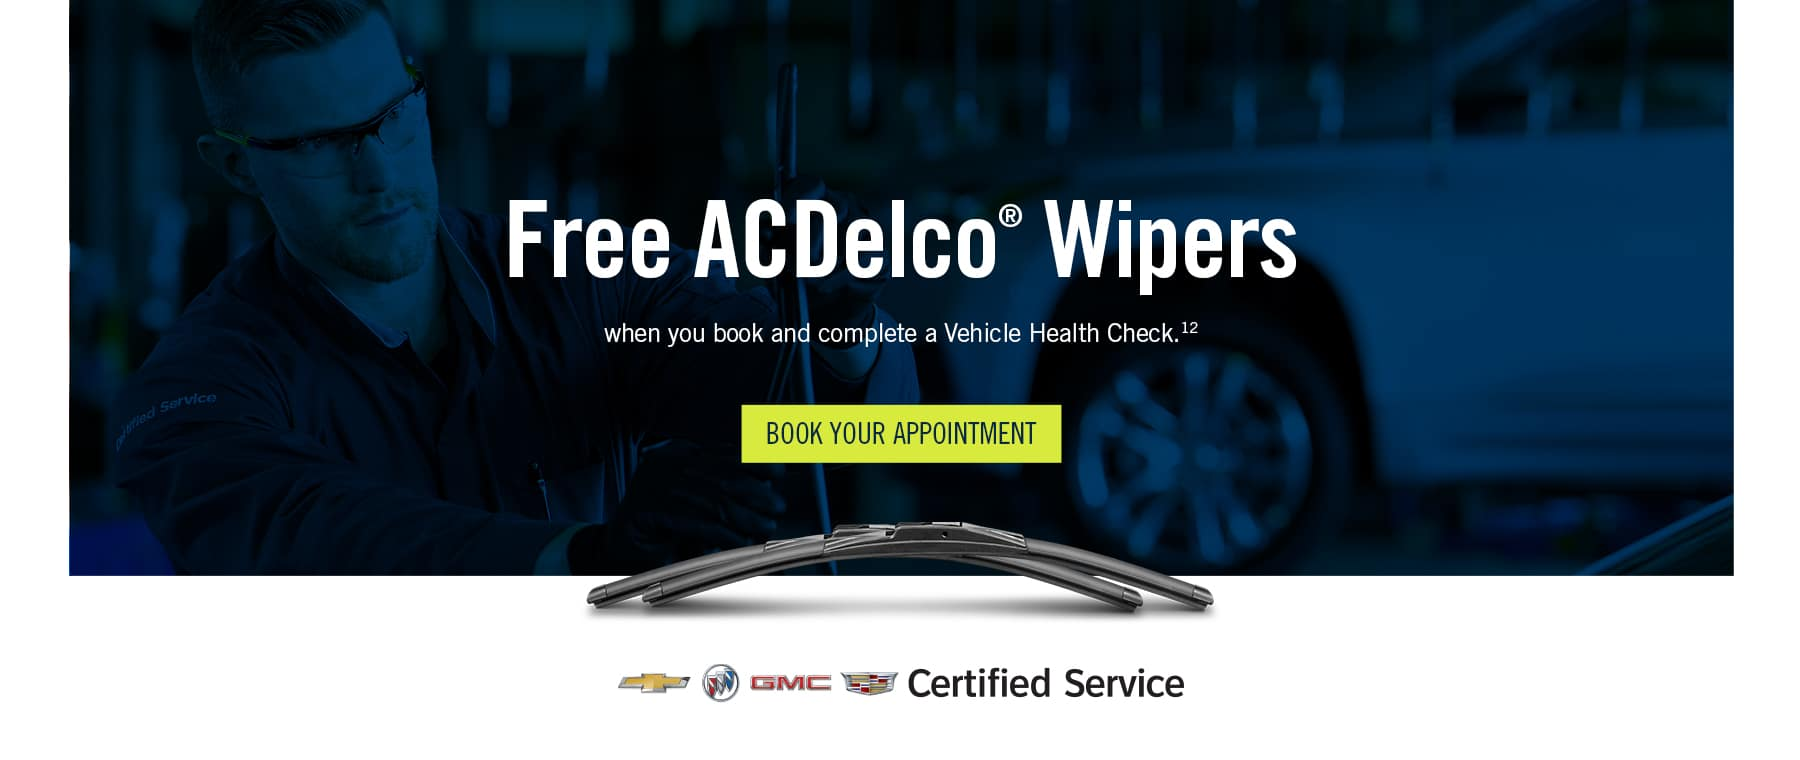 Free ACDelco Wipers